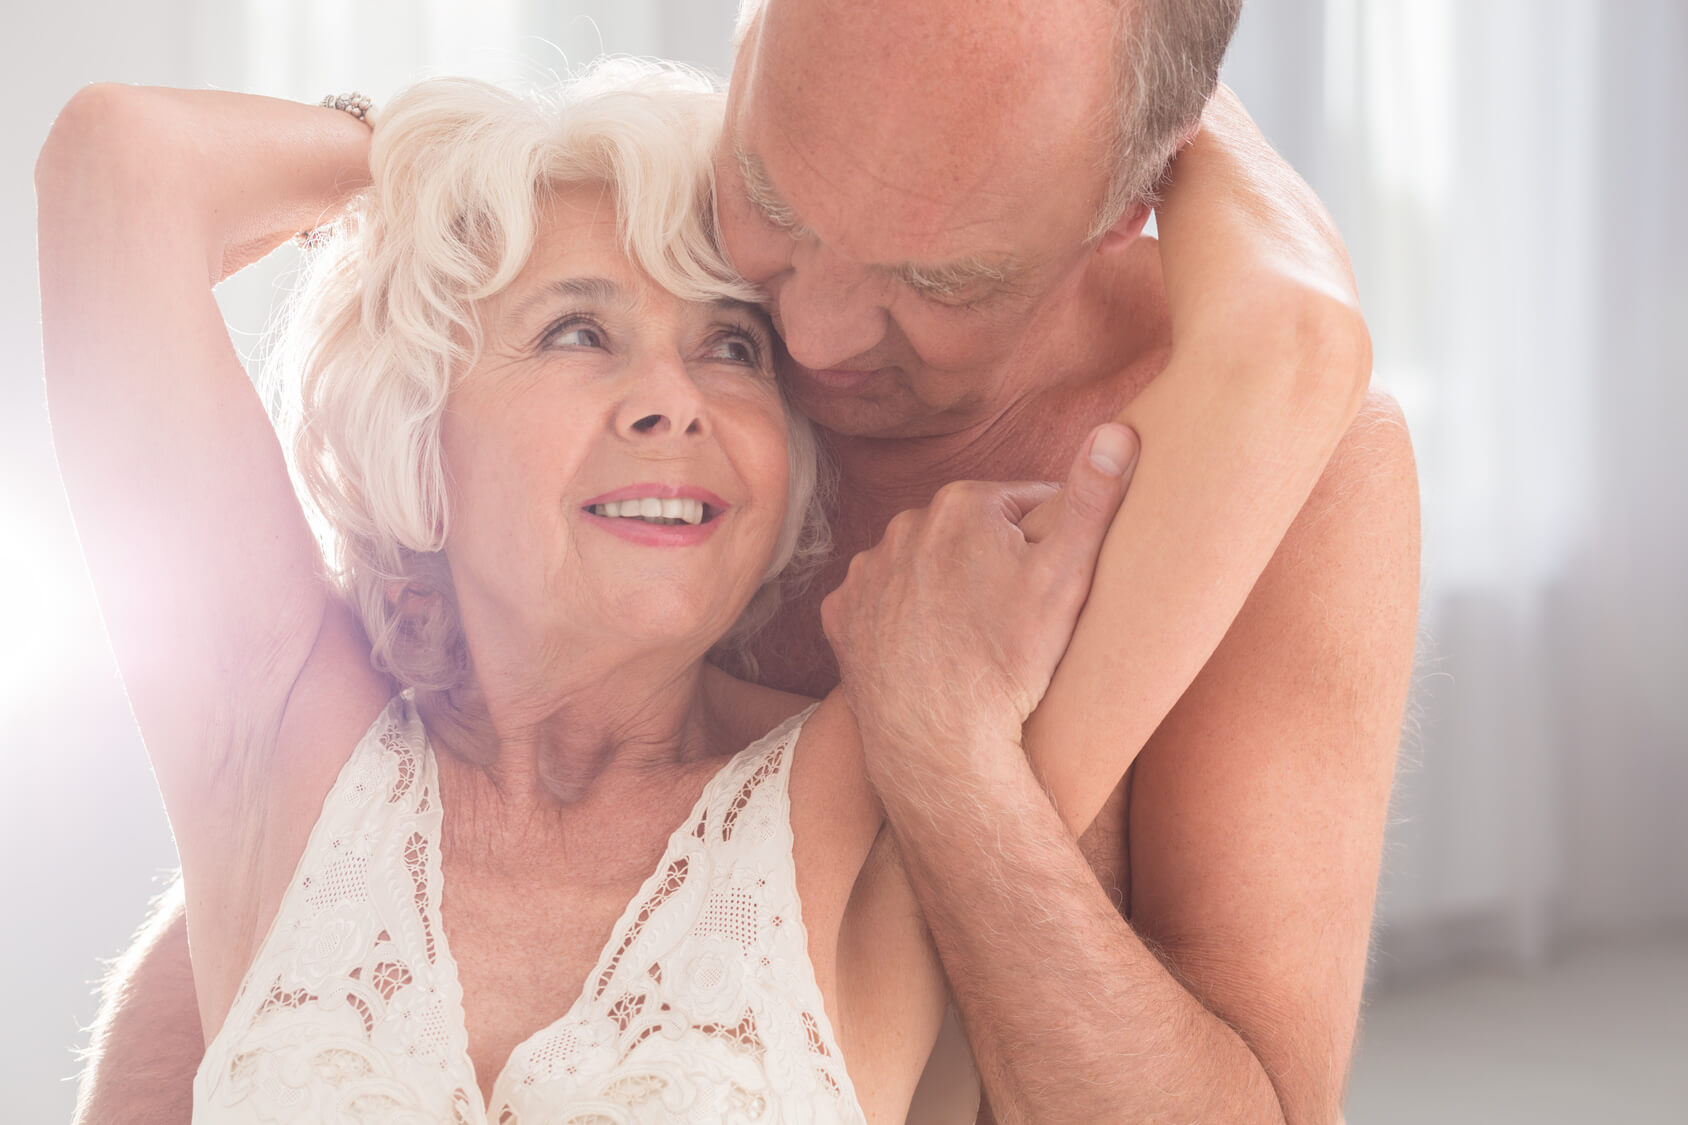 Sex and Aging - Senior citizen sexual health and sexuality